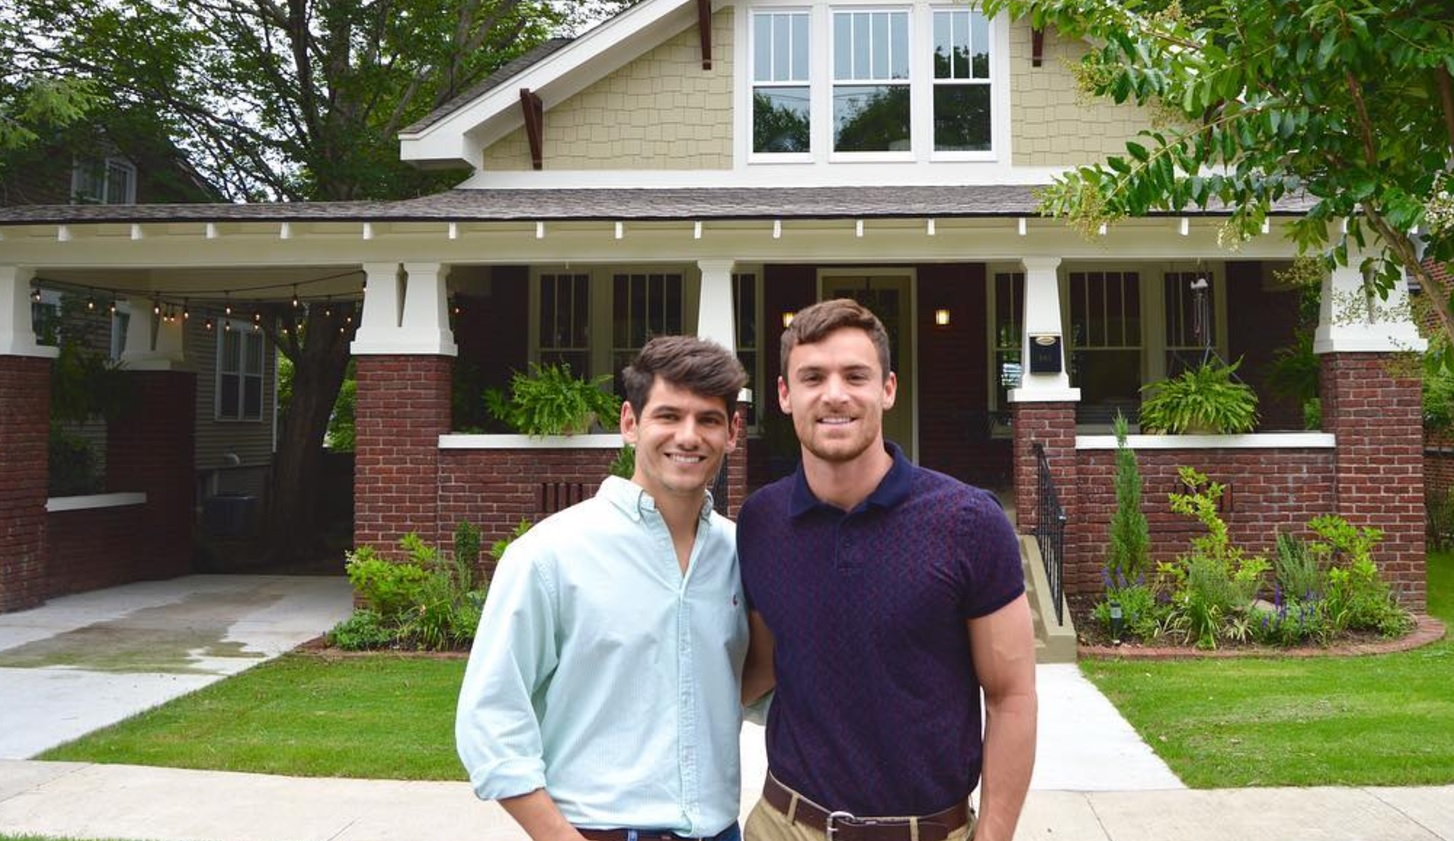 HGTV's Newest Hosts Are An Adorable Married Gay Couple